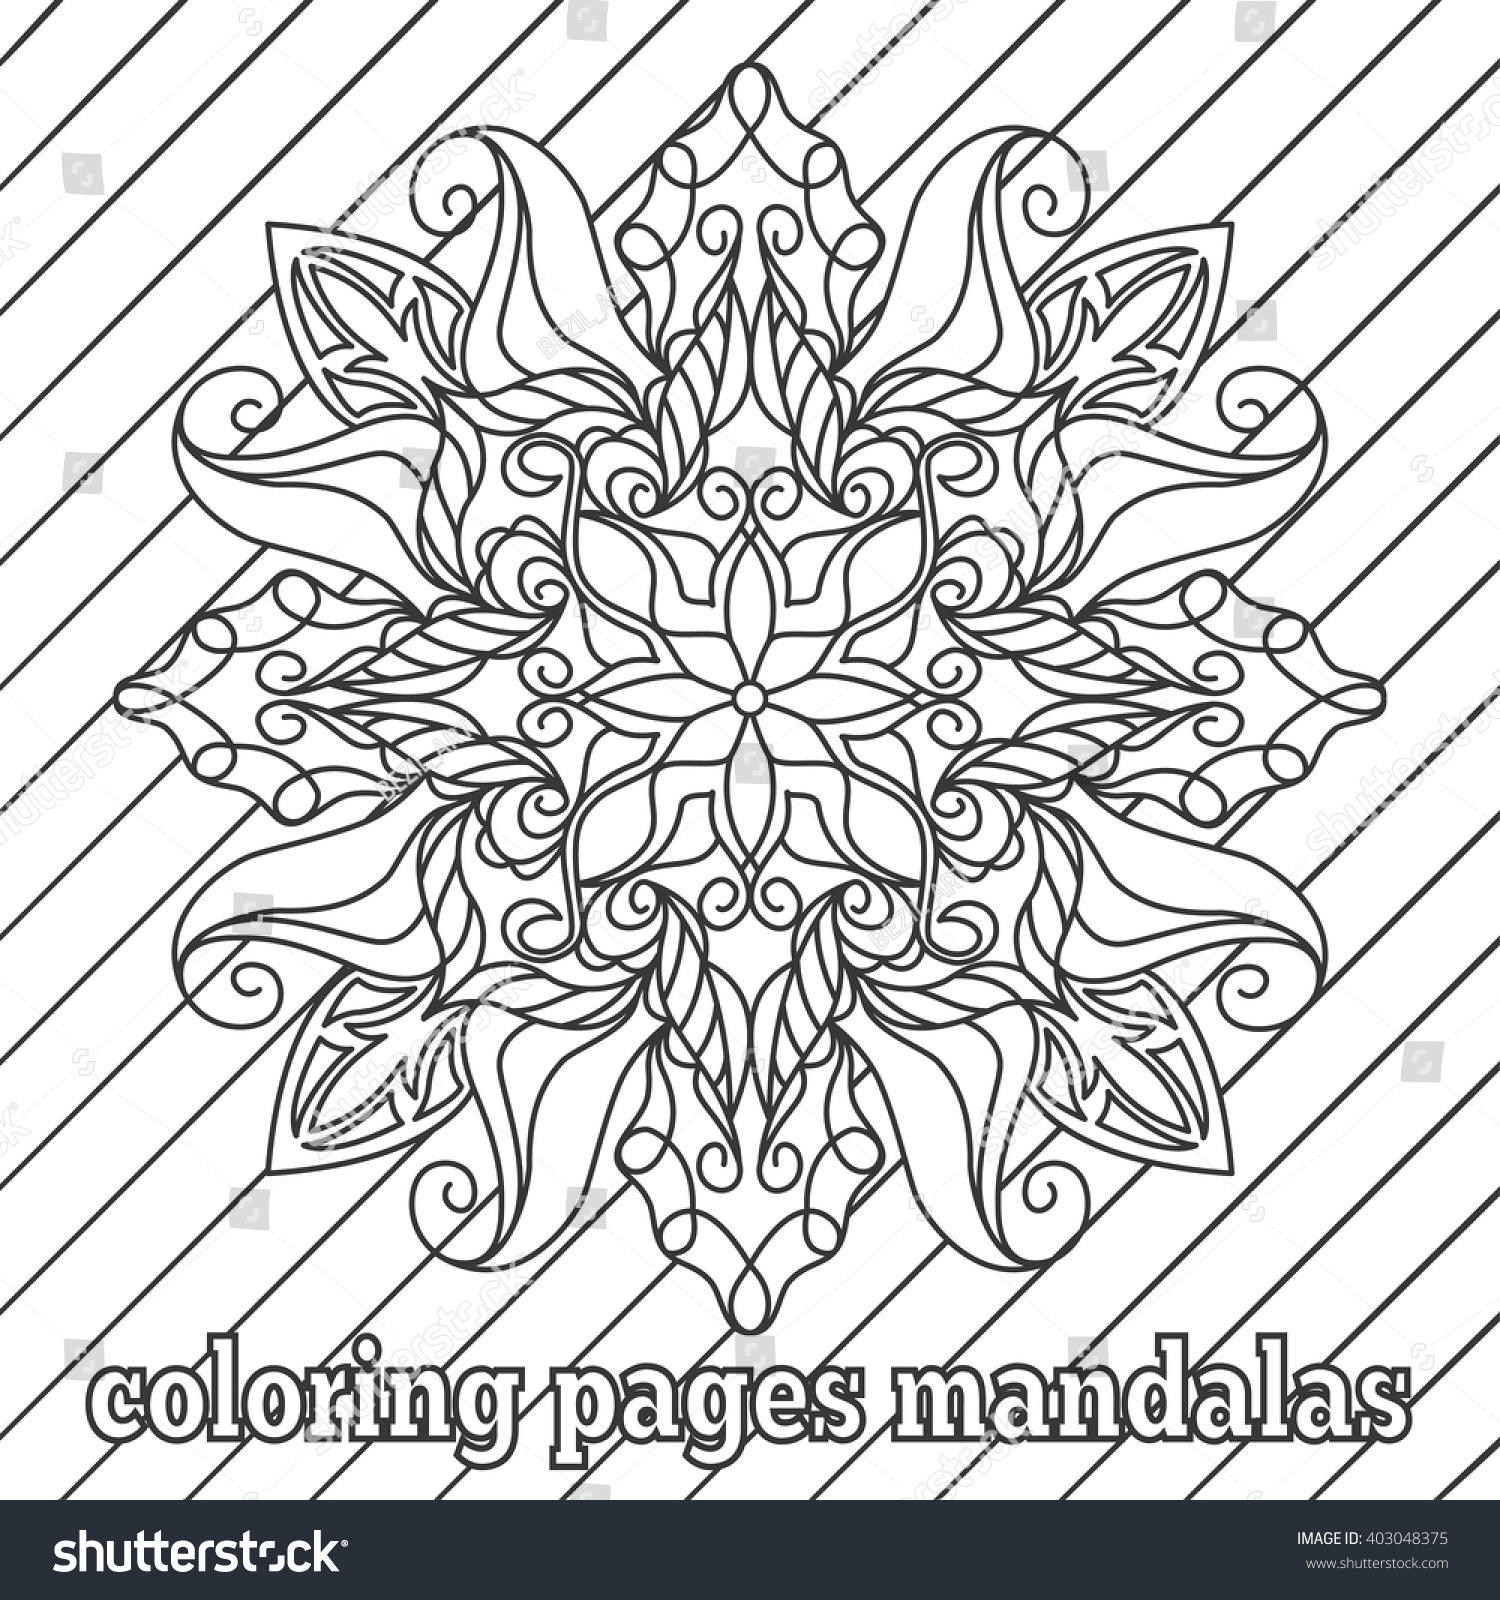 coloring pages adults older children patterns stock vector 403048375 shutterstock - Pattern Coloring Pages For Adults